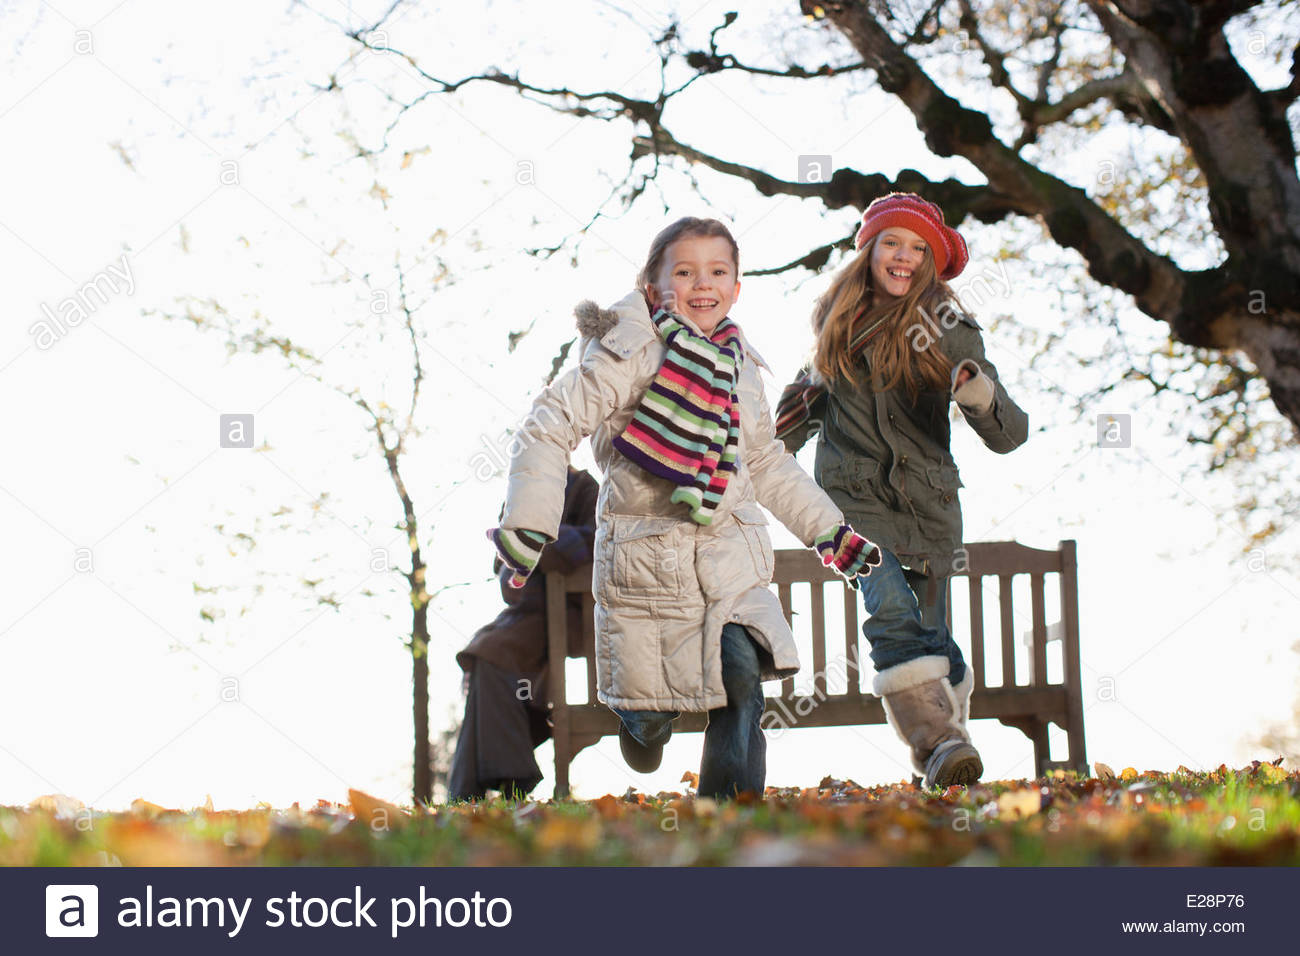 Two sisters playing outdoors in autumn - Stock Image